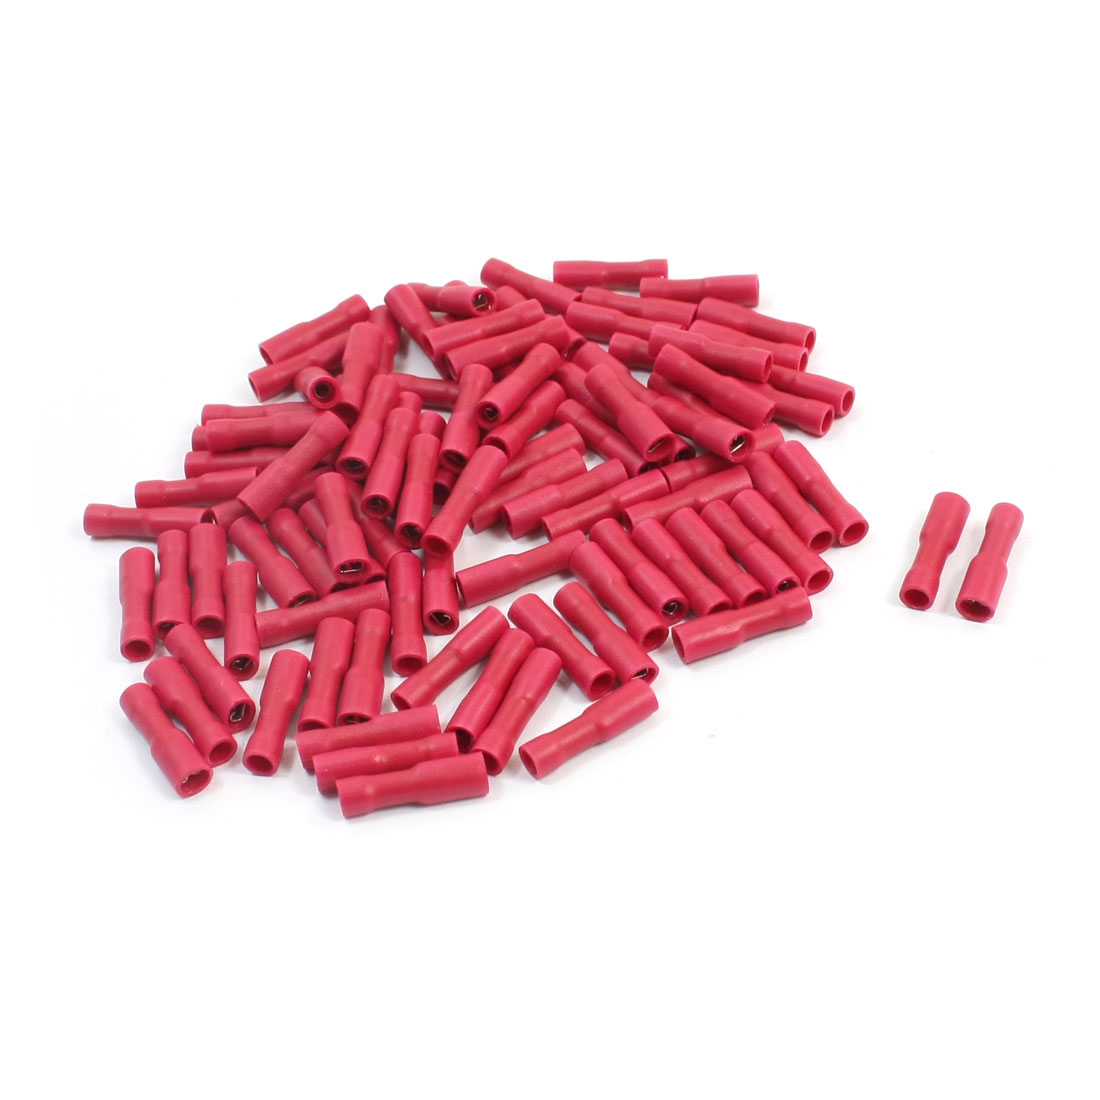 100pcs FDFD1-110 22-16AWG Wire Red Plastic Coated Female Spade Crimp Connector Push-On Insulated Terminal